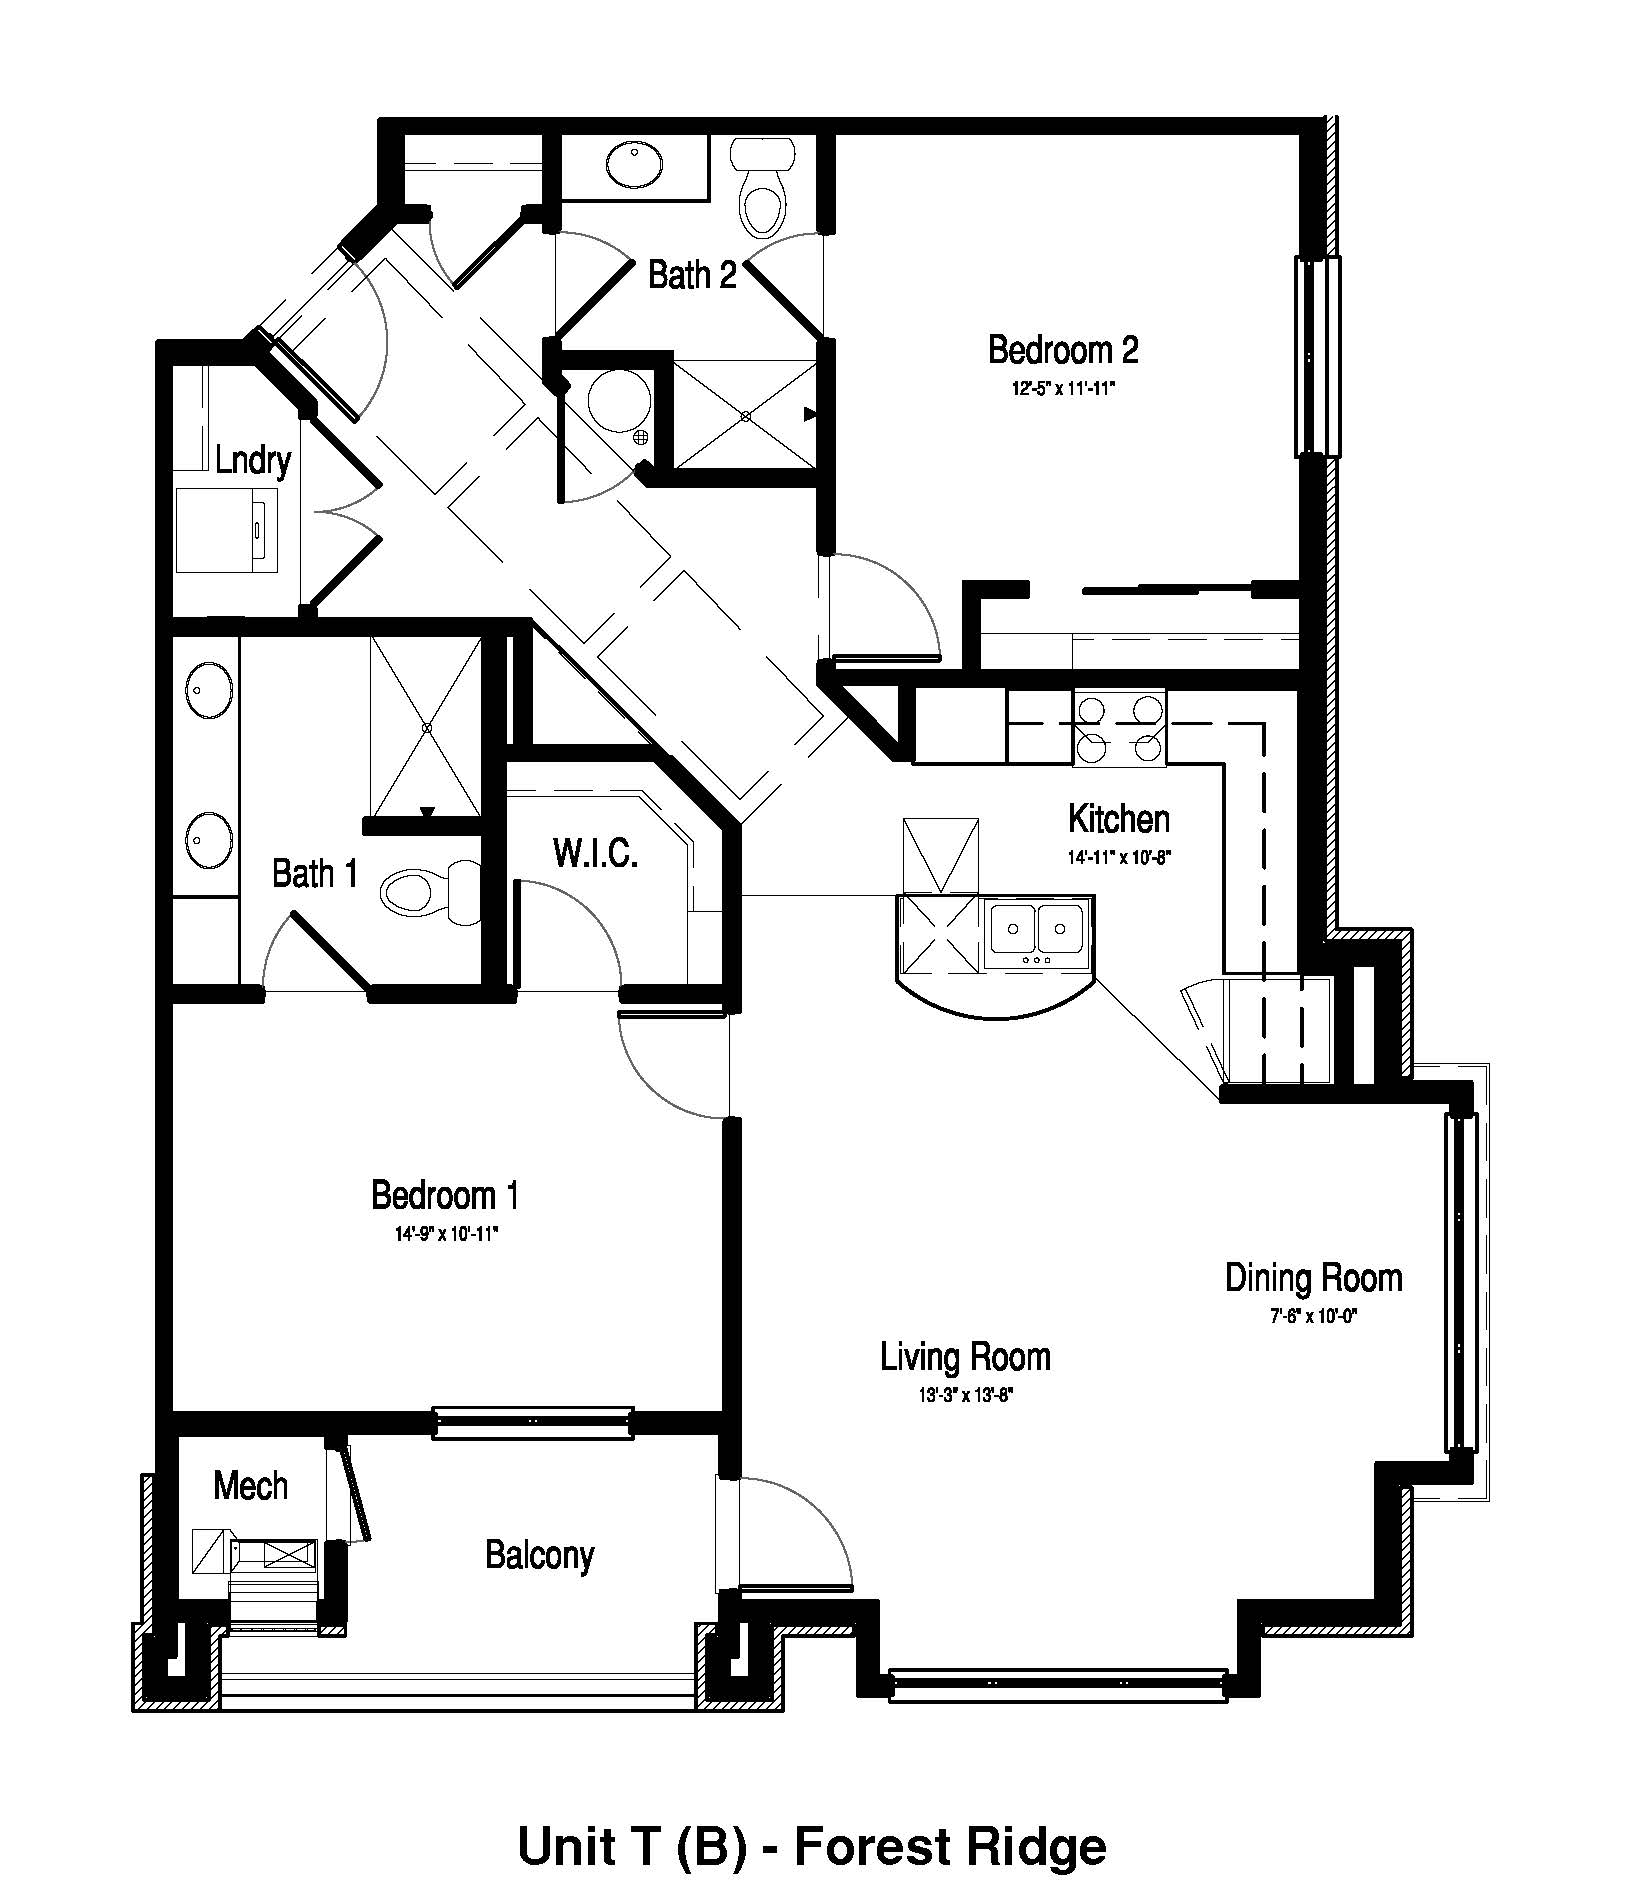 2 Bedroom, 2 Bath - 1,244 Sq. Ft. - Forest Ridge Expansion